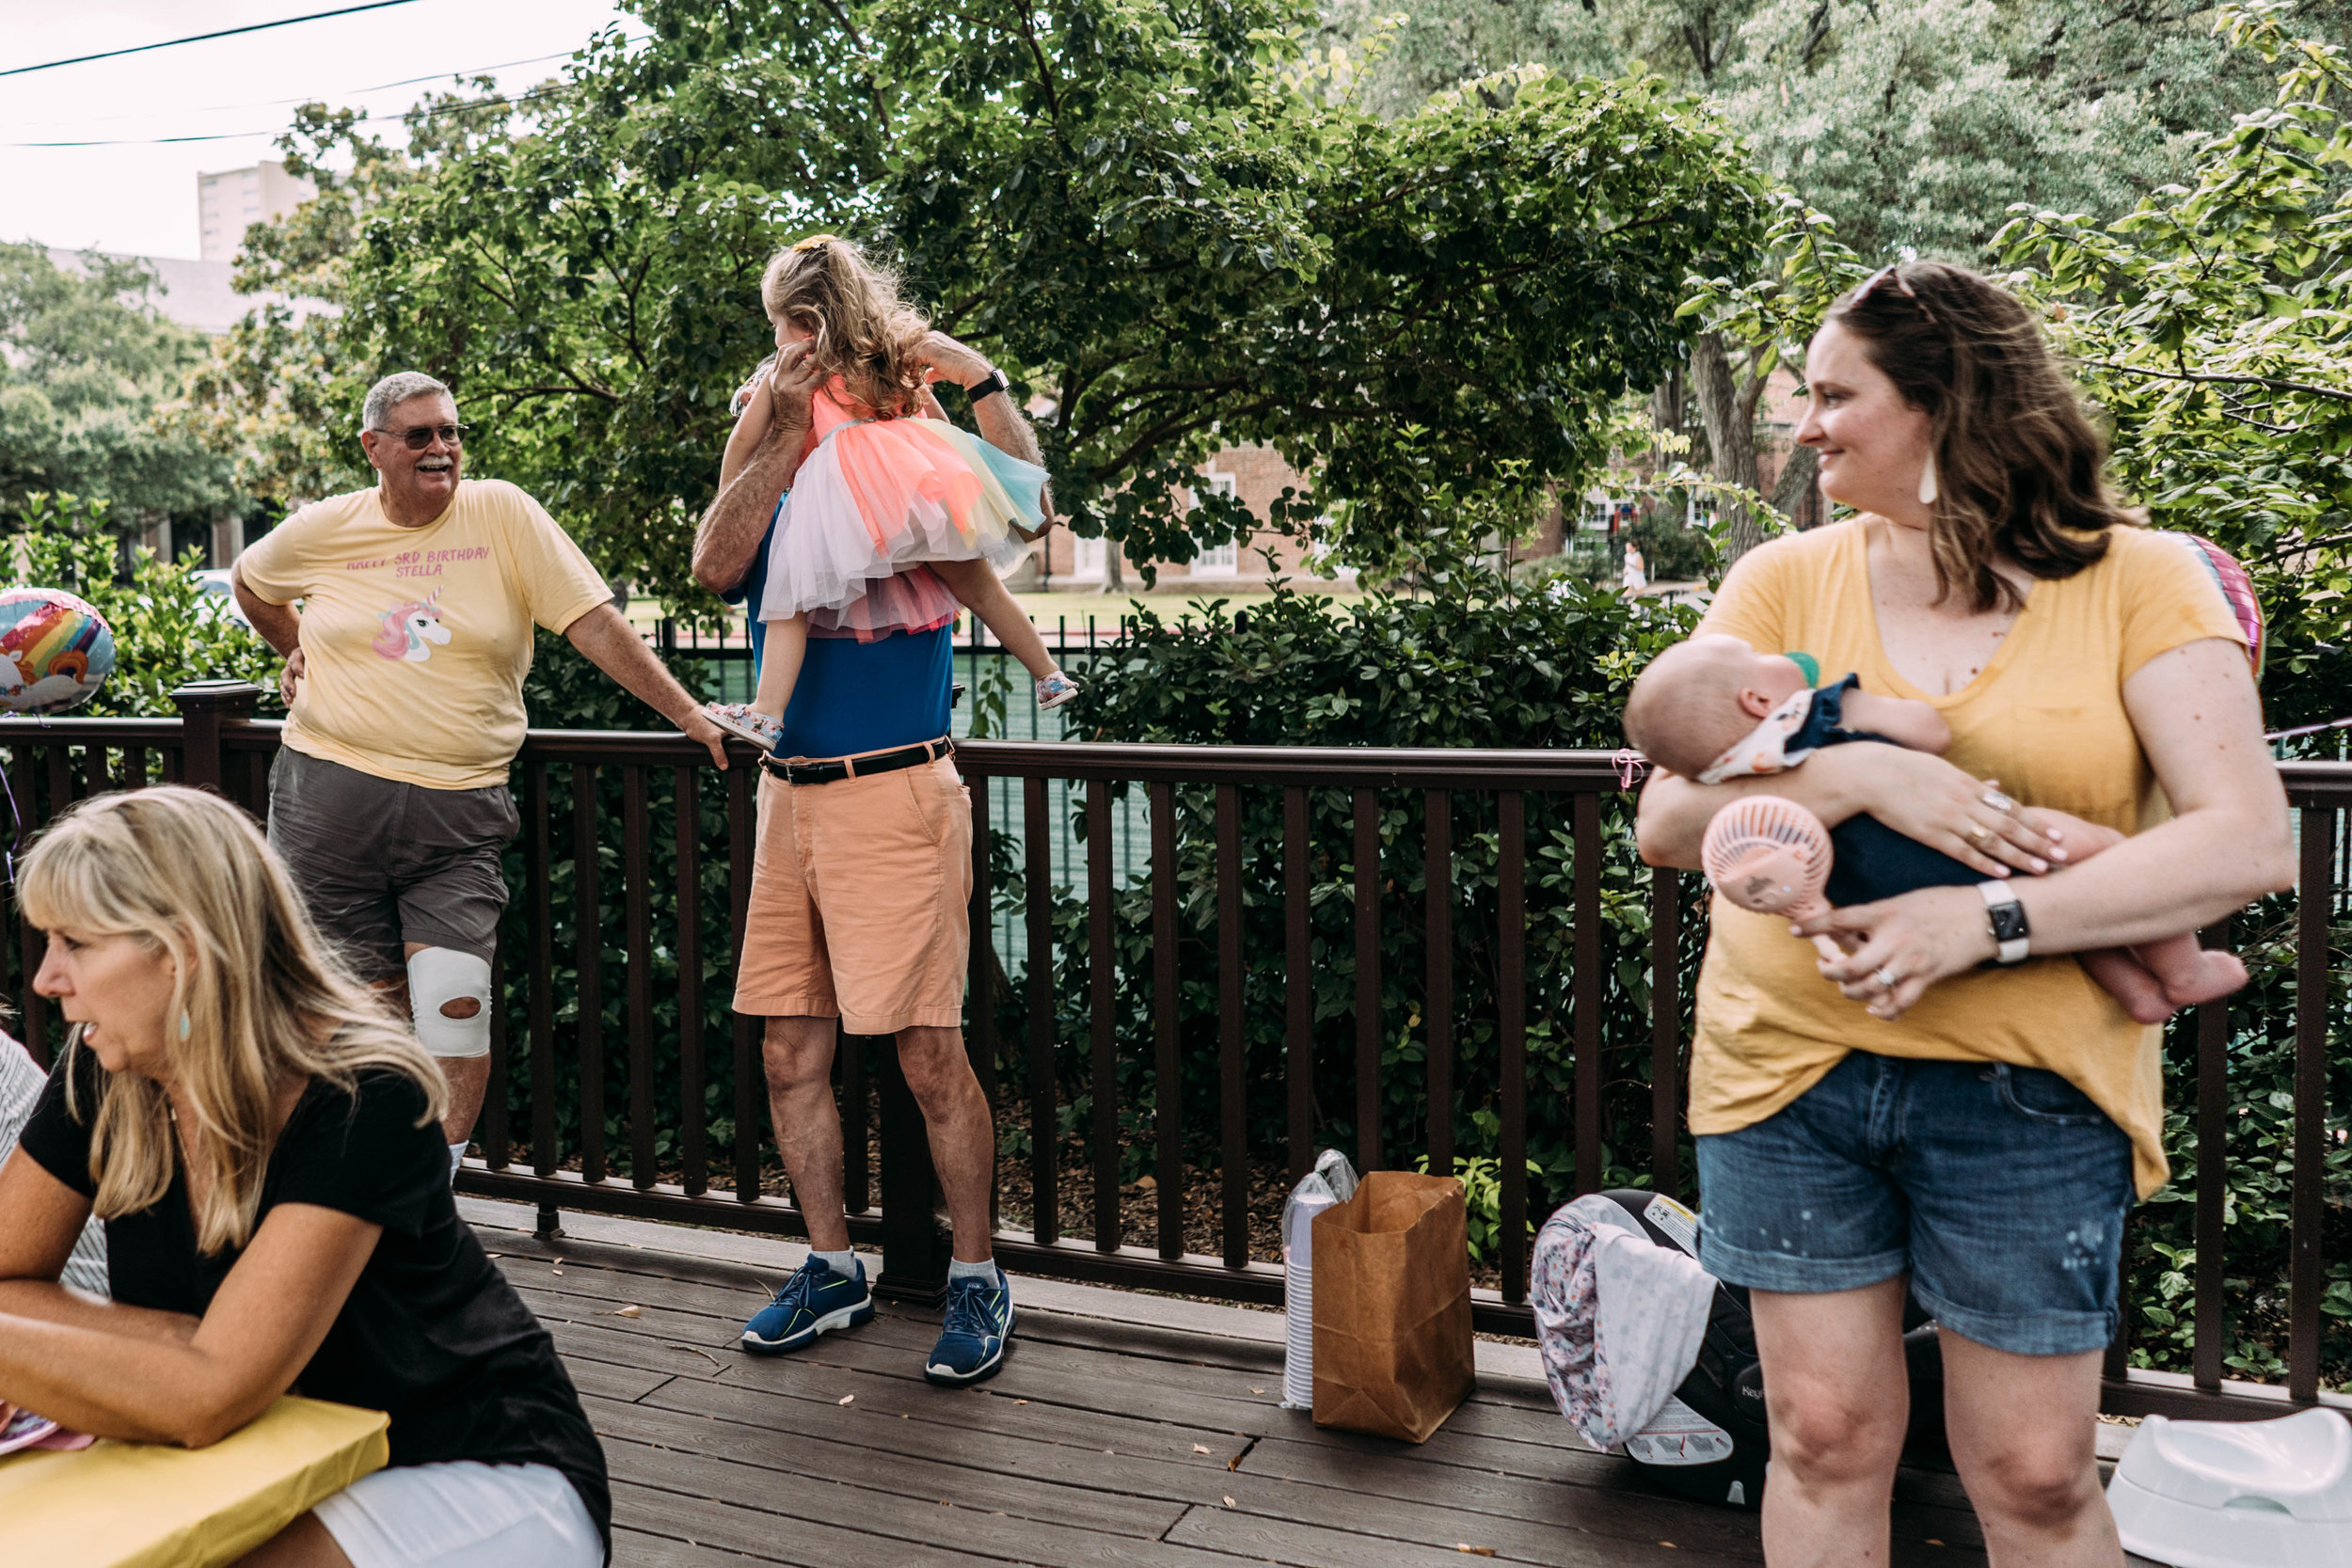 birthday party at the park-29.jpg